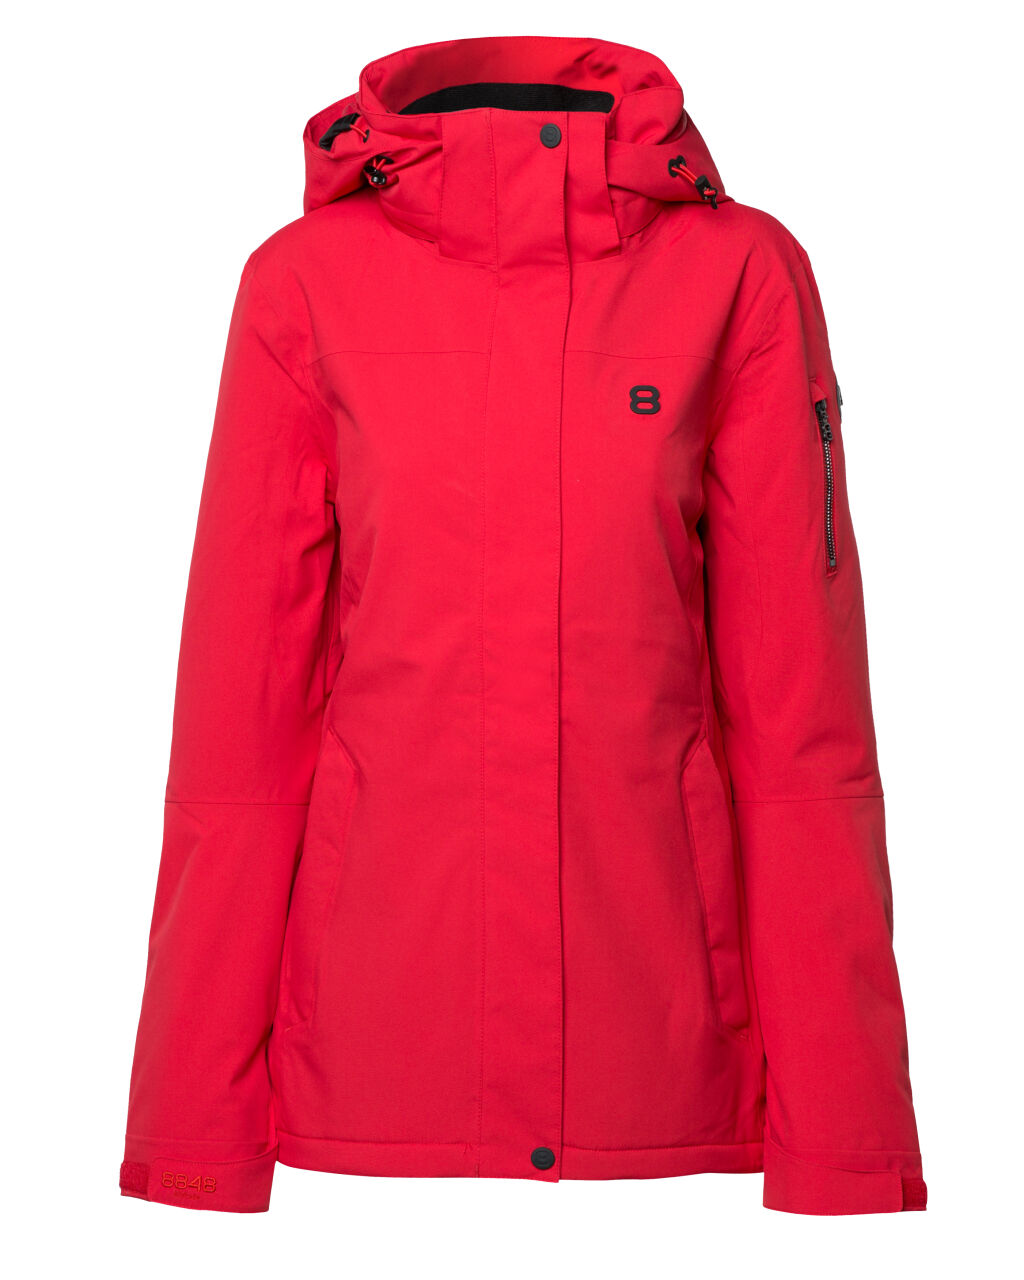 8848 Altitude Ebba Jacket W